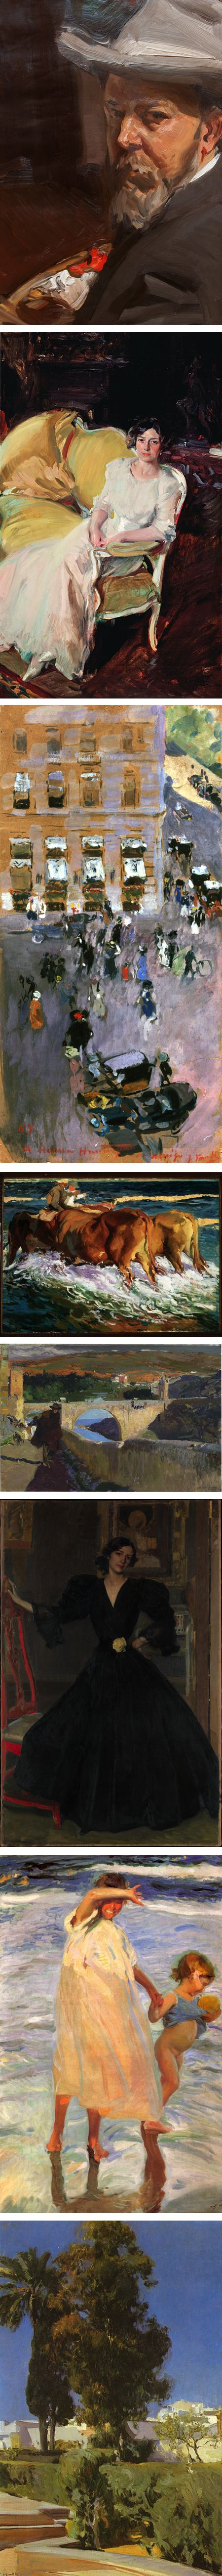 Joaquin Sorolla, Sorolla and AMerican at San Diego Museum of Art